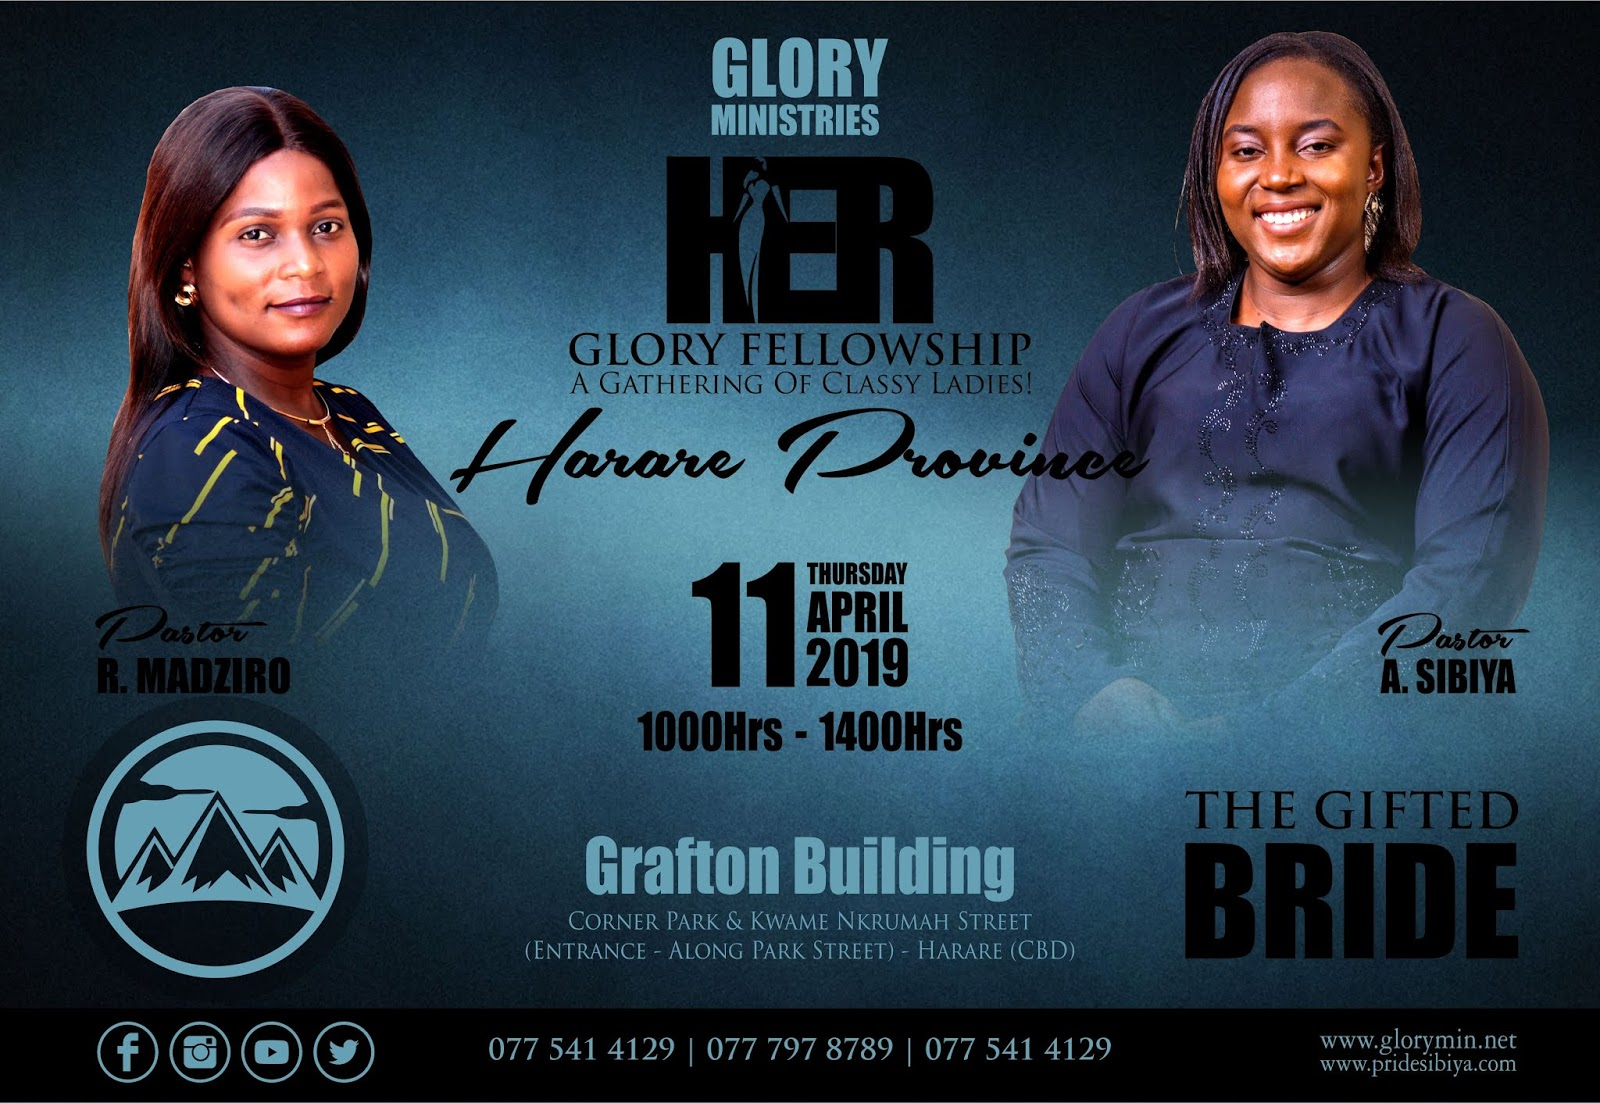 At 2019 Her Glory Women's Fellowship - Harare Province (April 2019)